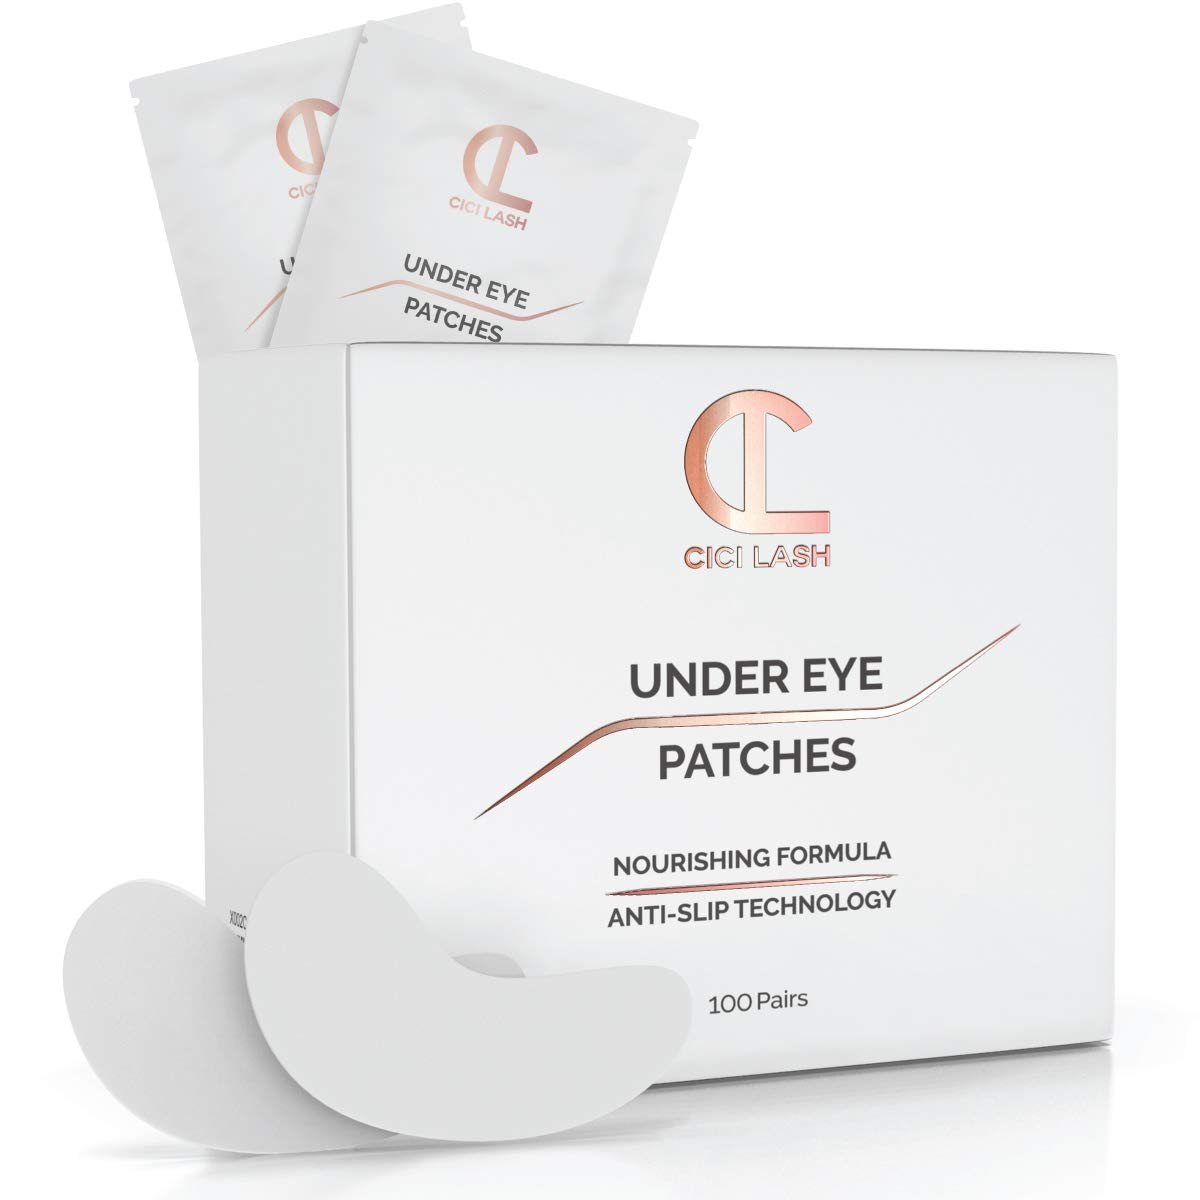 100 Pairs Under Eye Pads for Eyelash Extensions – Professional Lint Free Hydrogel Eye Patches with Moisturizing Vitamin C and Aloe Vera for Eyelash Extension & Lash Lift/Perm - Gel Undereye Eyepads